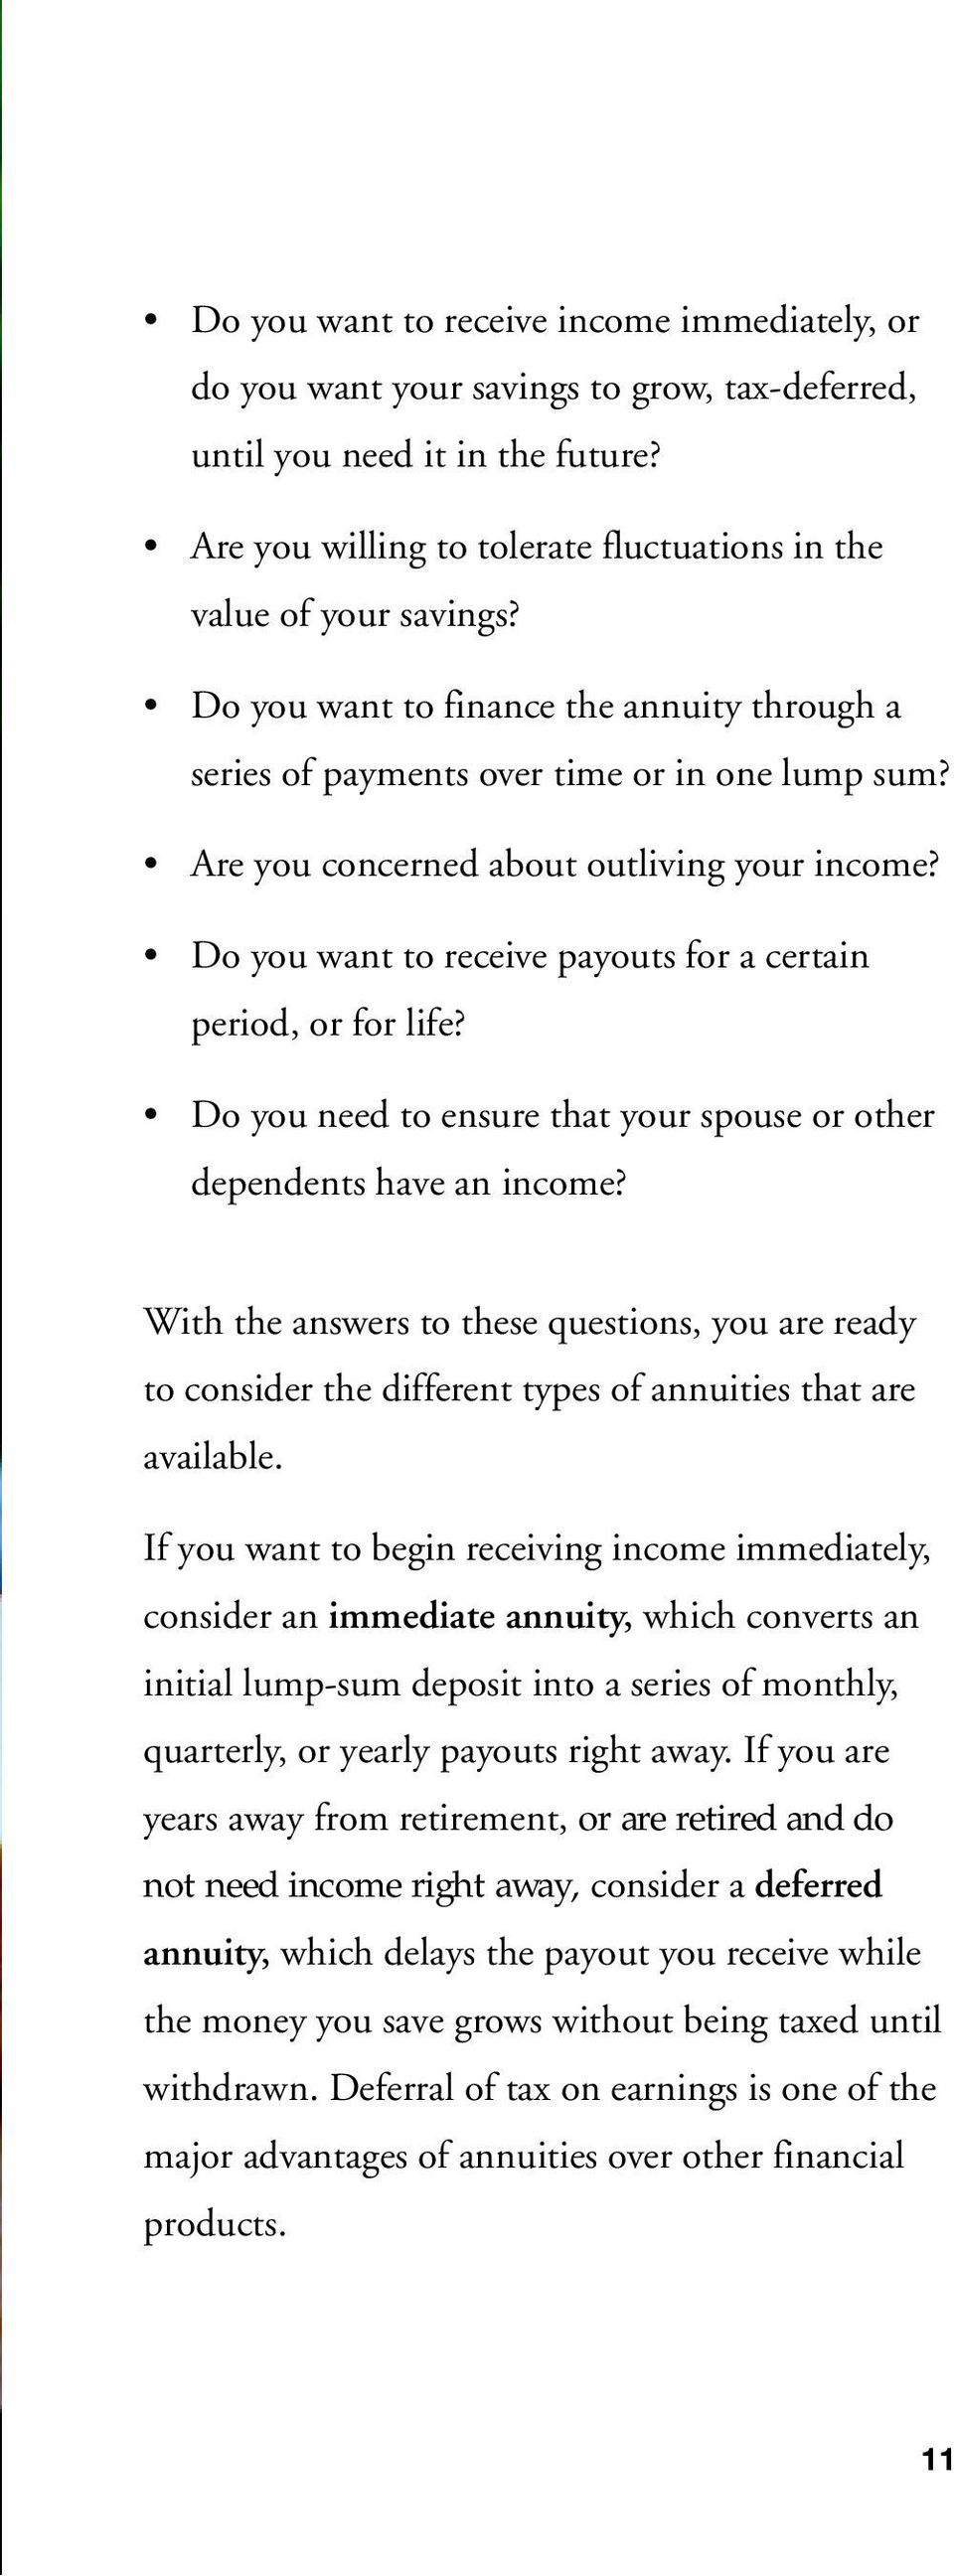 Do you want to receive payouts for a certain period, or for life? Do you need to ensure that your spouse or other dependents have an income?